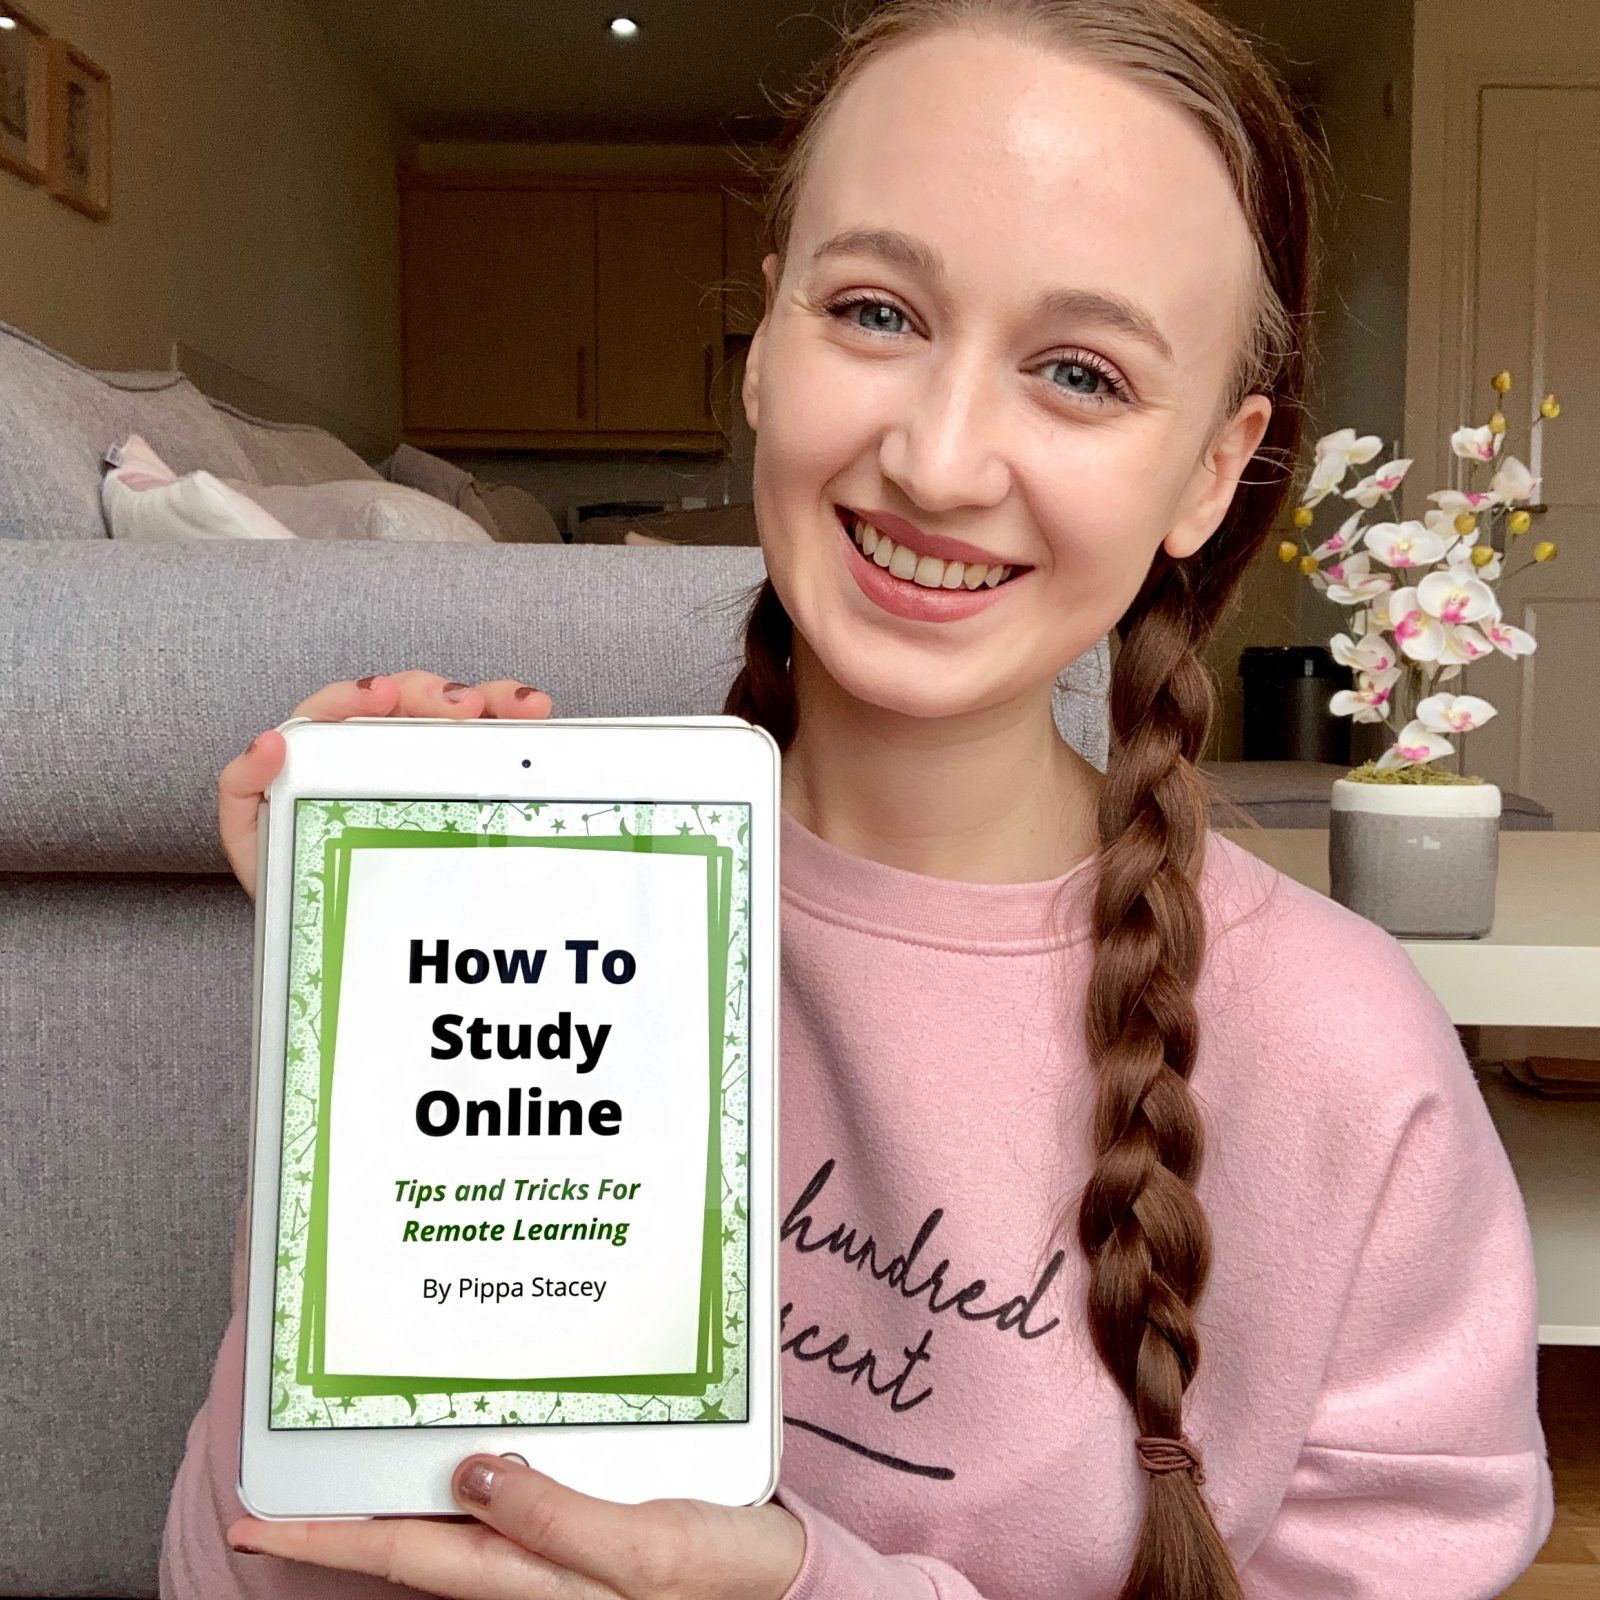 headshot of pippa, sat on floor wearing pink jumper and brown hair in twi plaits, holding up an iPad showing the front cover of 'how to study online' ebook